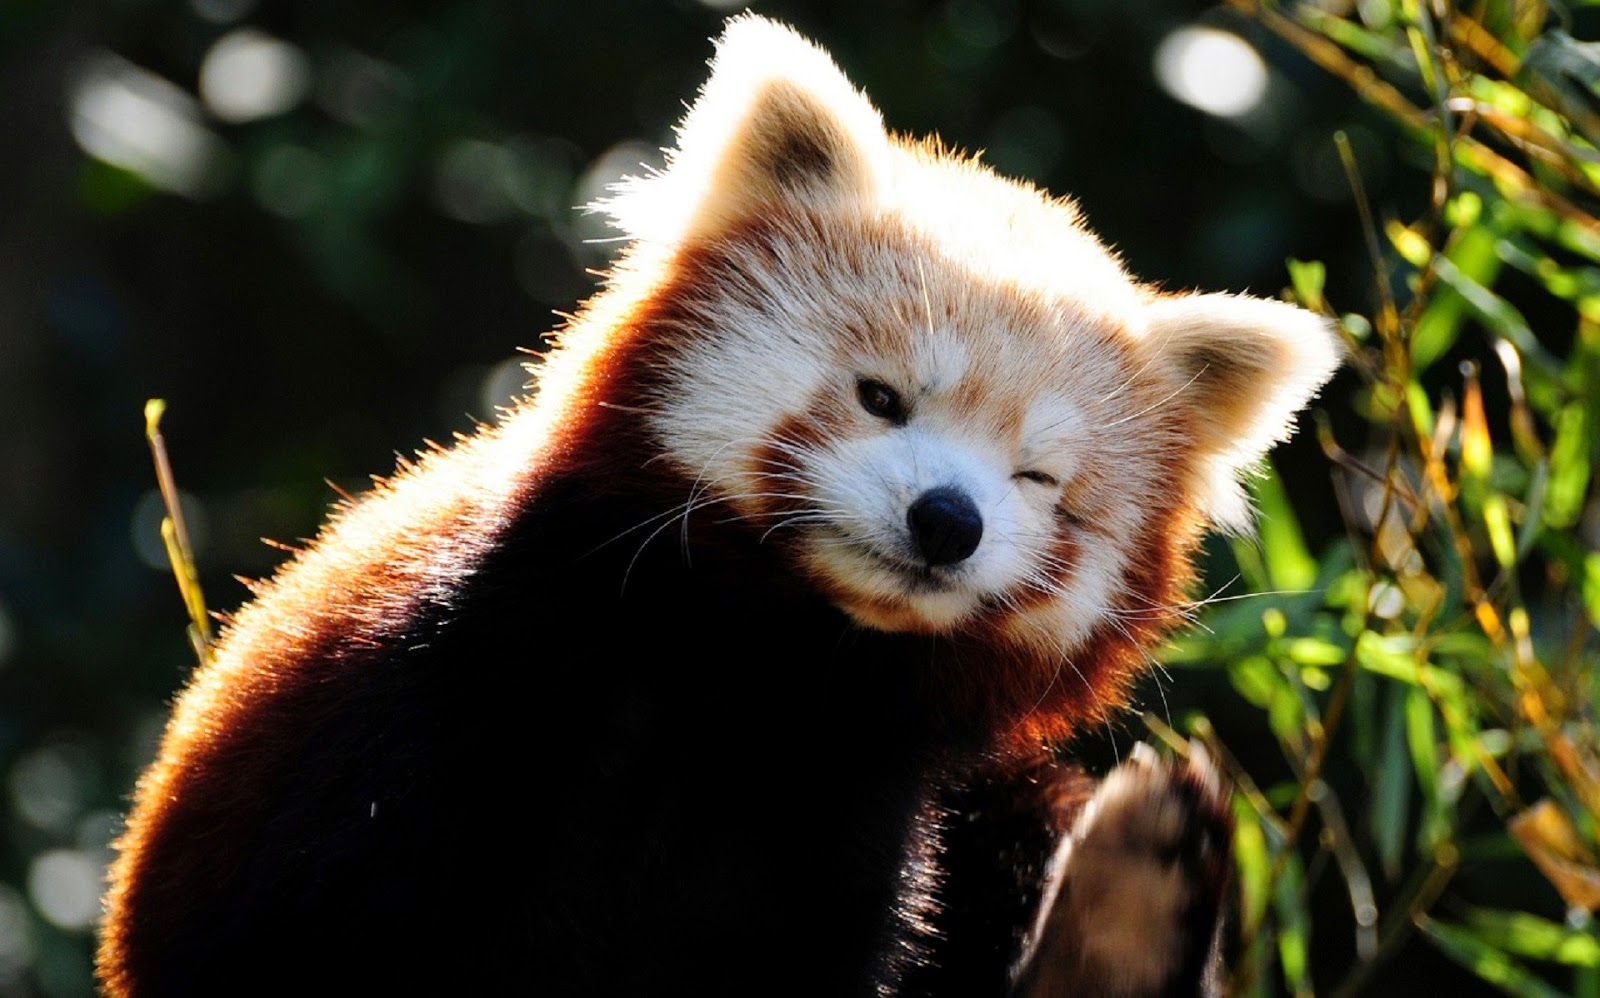 40 Adorable red panda pictures (40 pics), cute red panda winks his eye